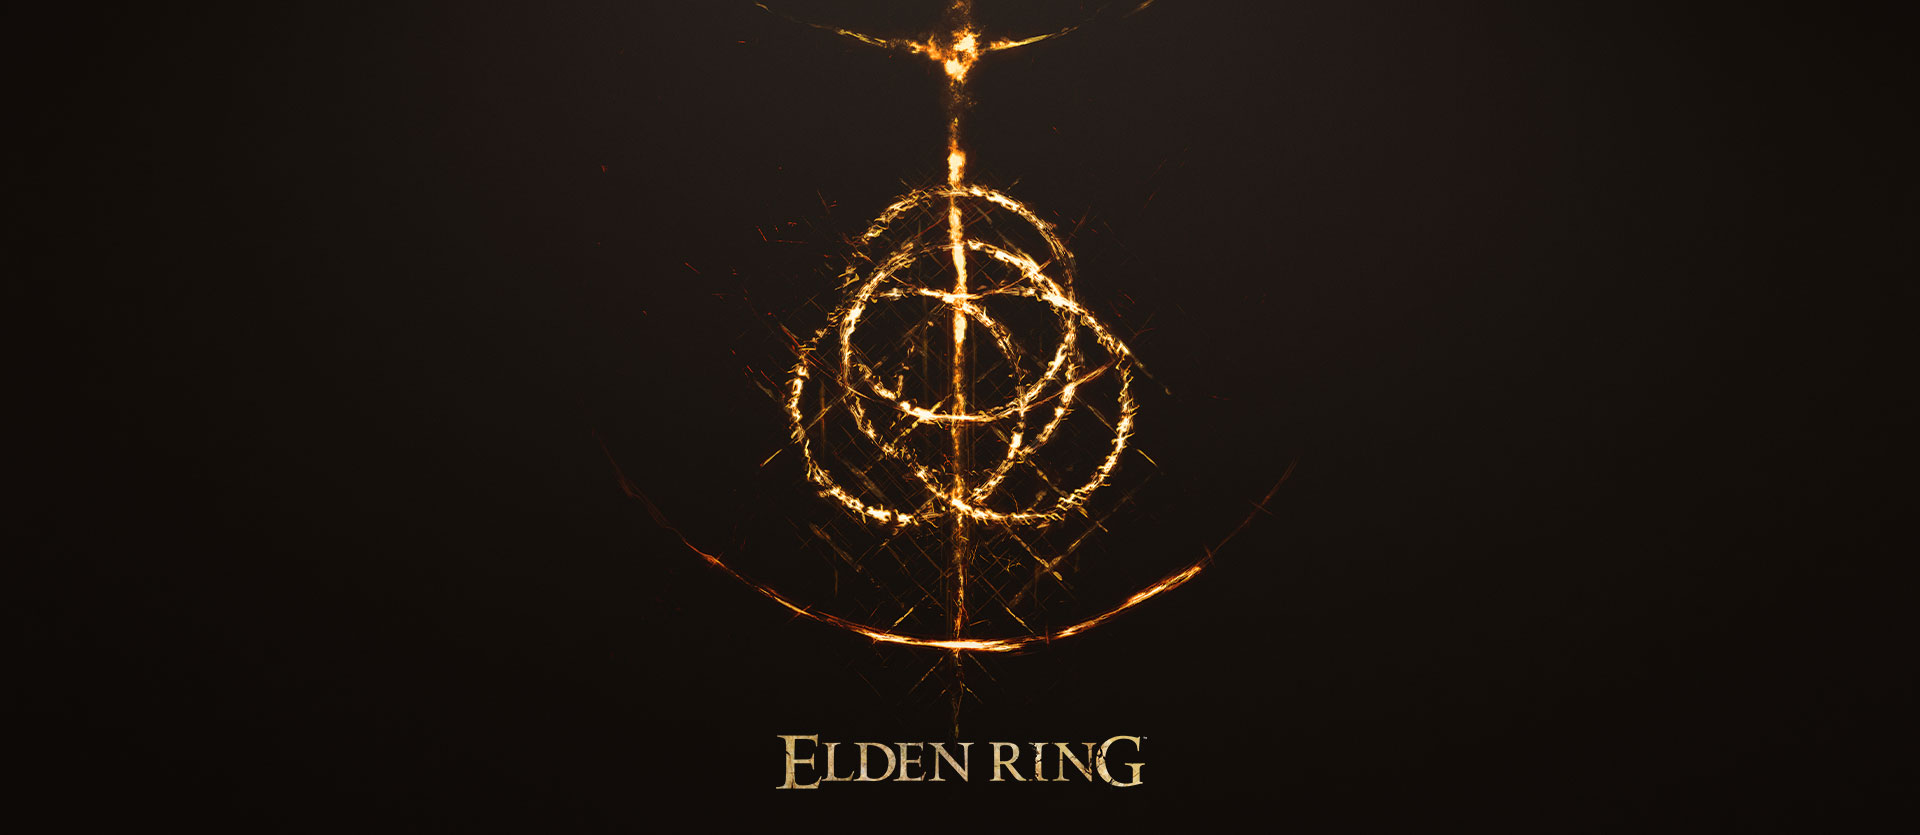 Elden Ring logo